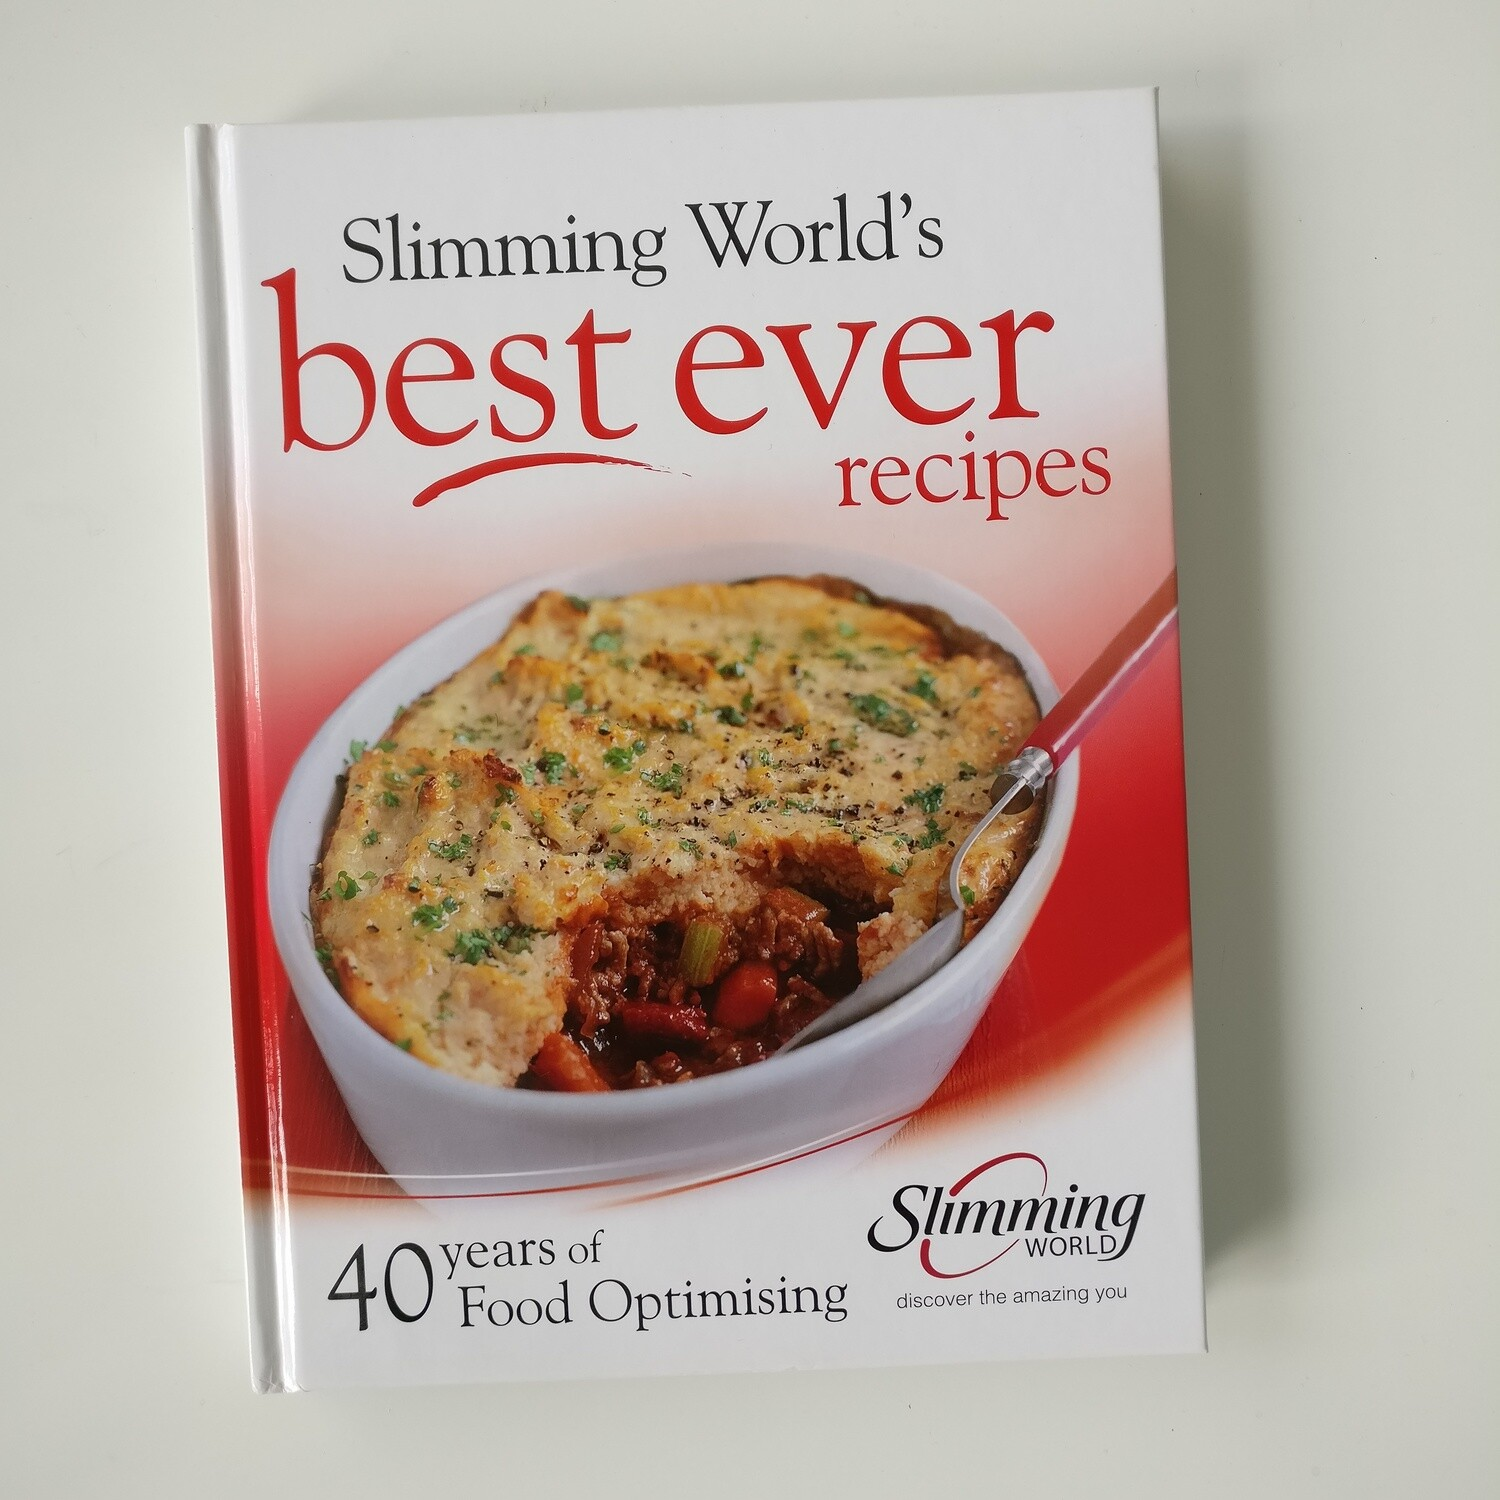 Slimming World Recipes - Pie / food Notebook